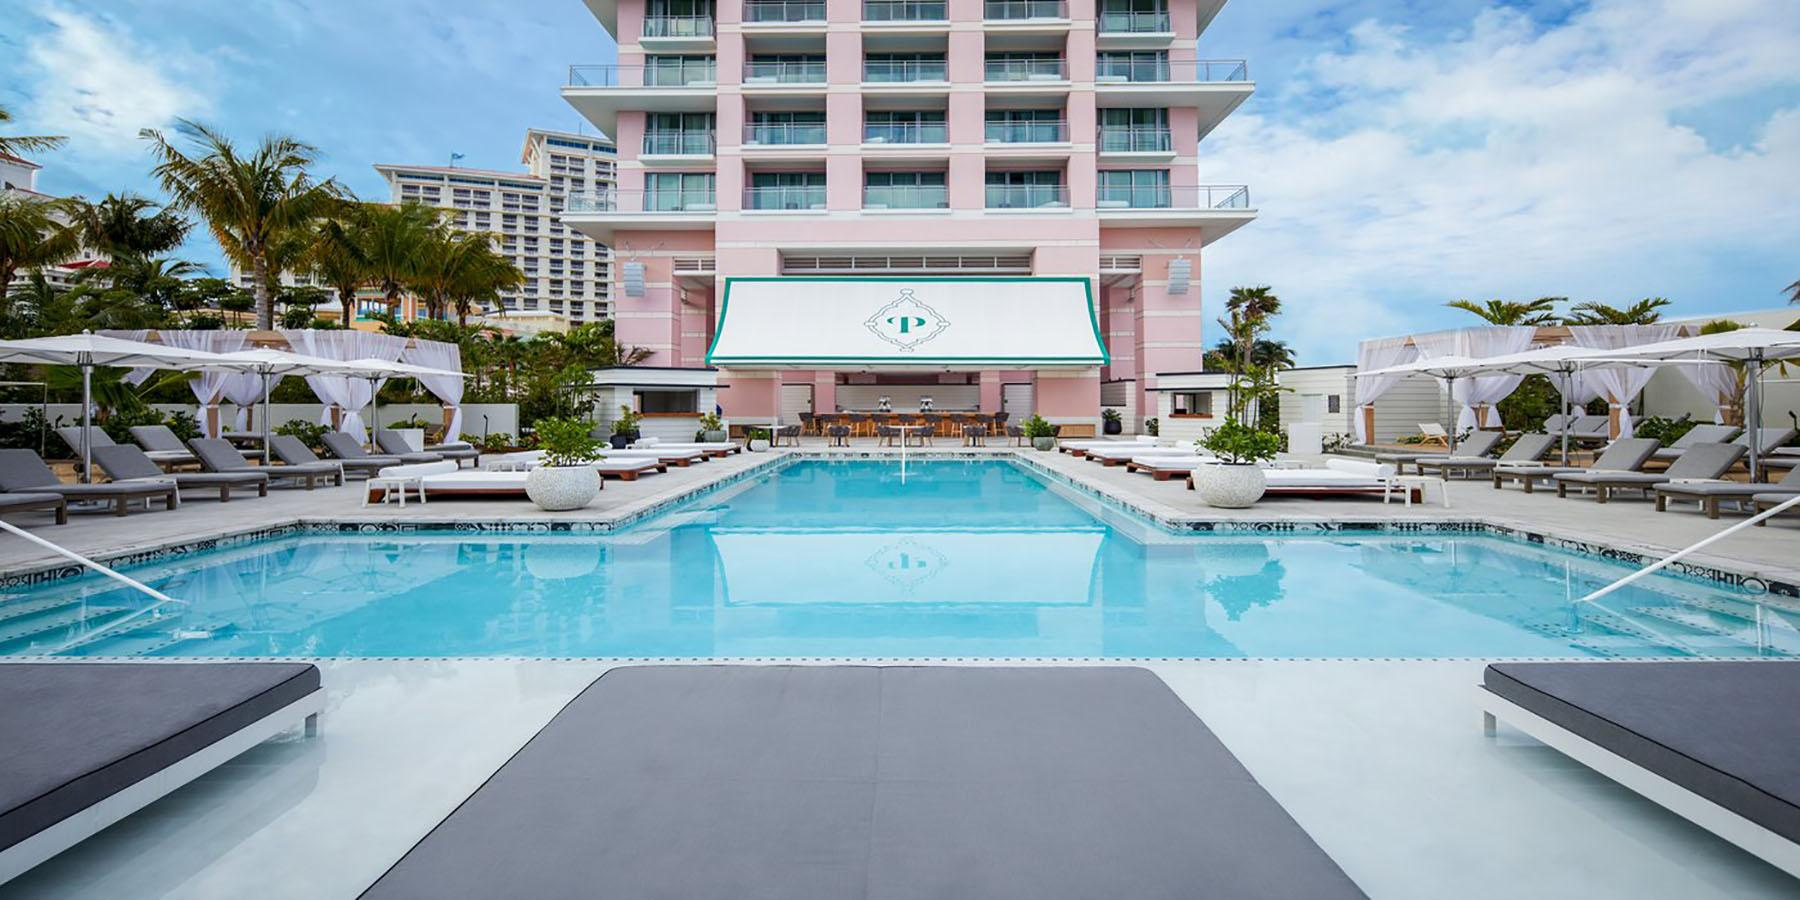 Privilege pool at SLS Baha Mar